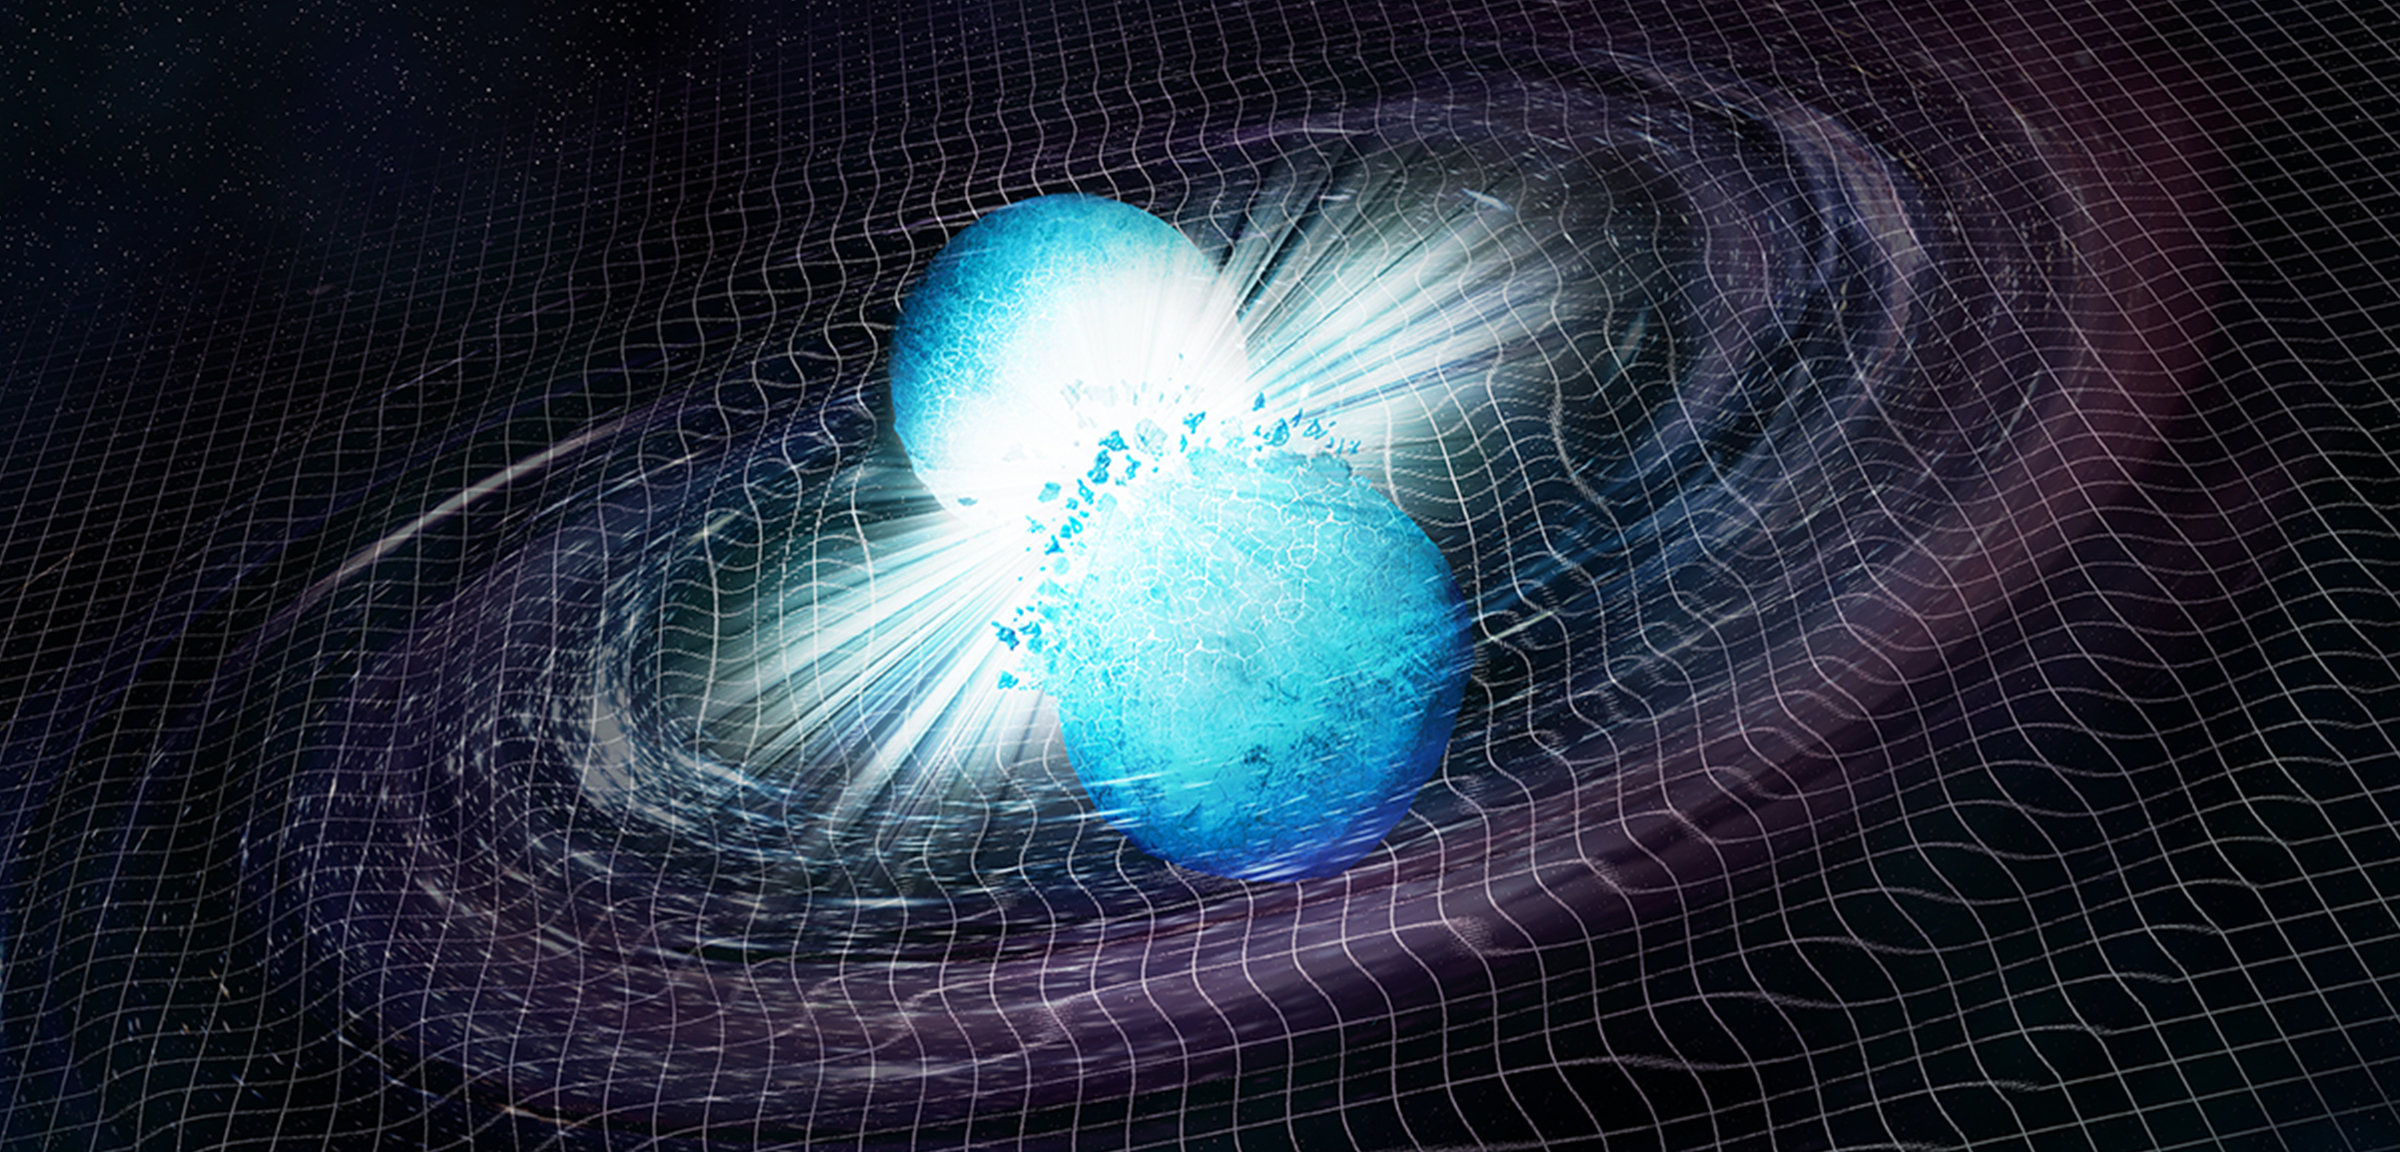 new era of astronomy uncovers clues about the cosmos